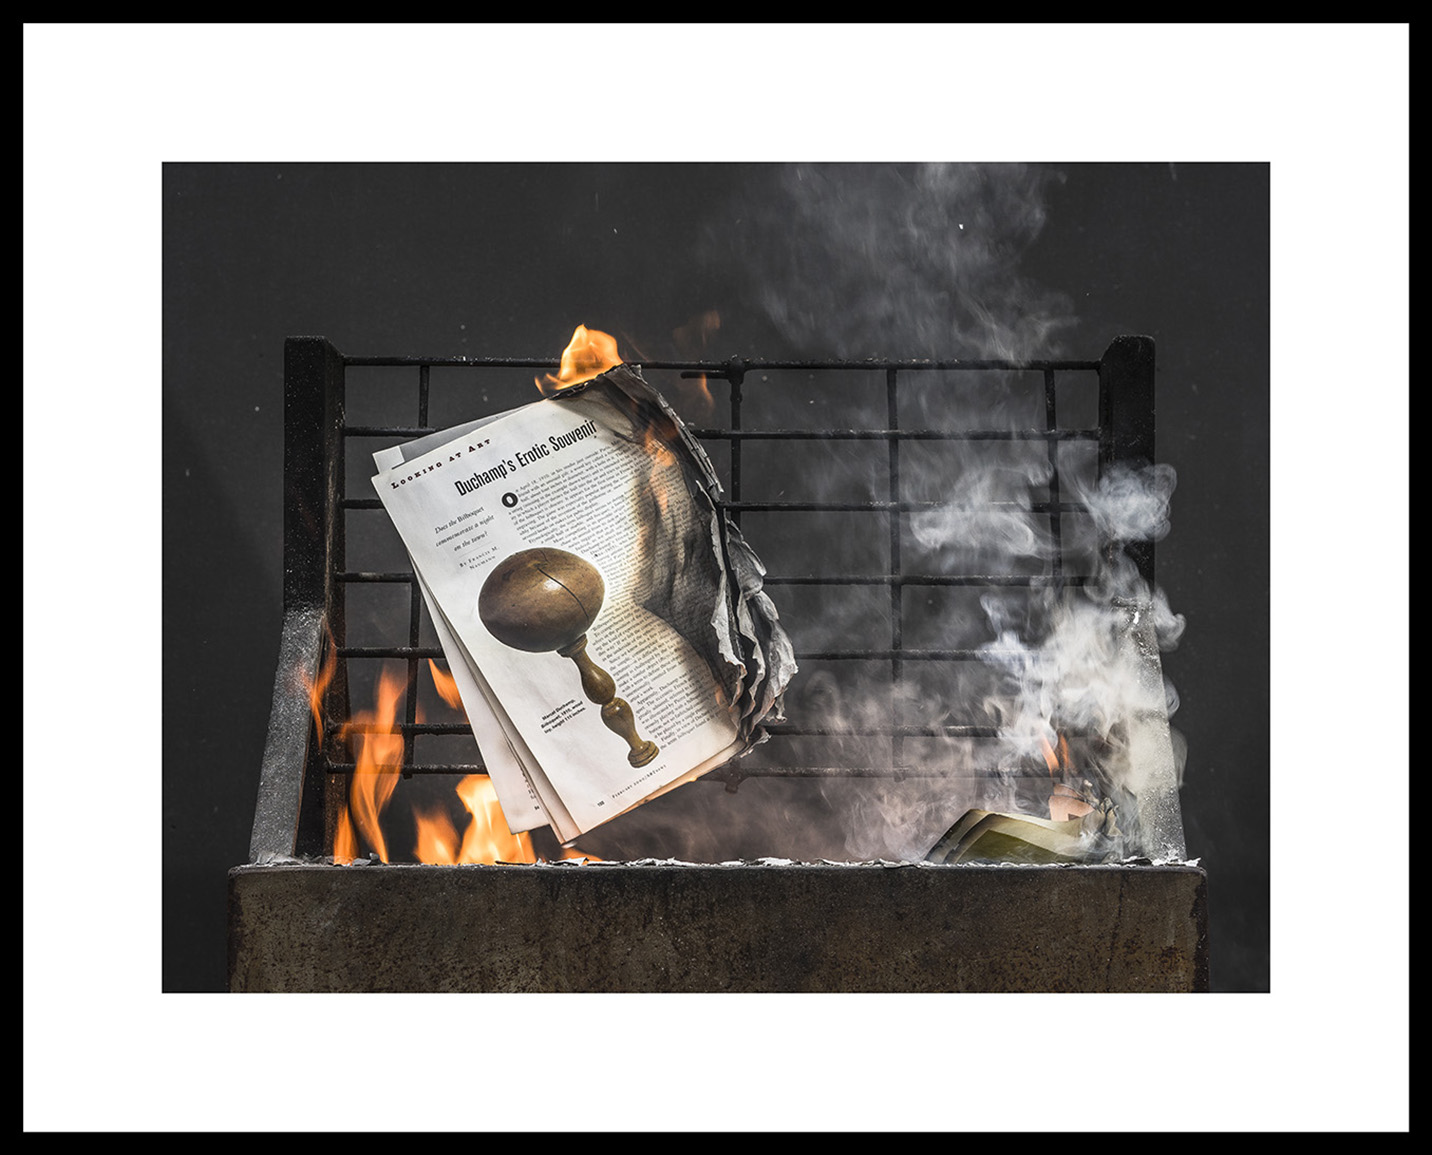 AN Feb 2000 #1545F, 2019     Archival ink jet print on Epson exhibition fiber paper Image: 18x24in, Paper: 24x30in, Frame: 25x31in, Edition of 5 with 2AP